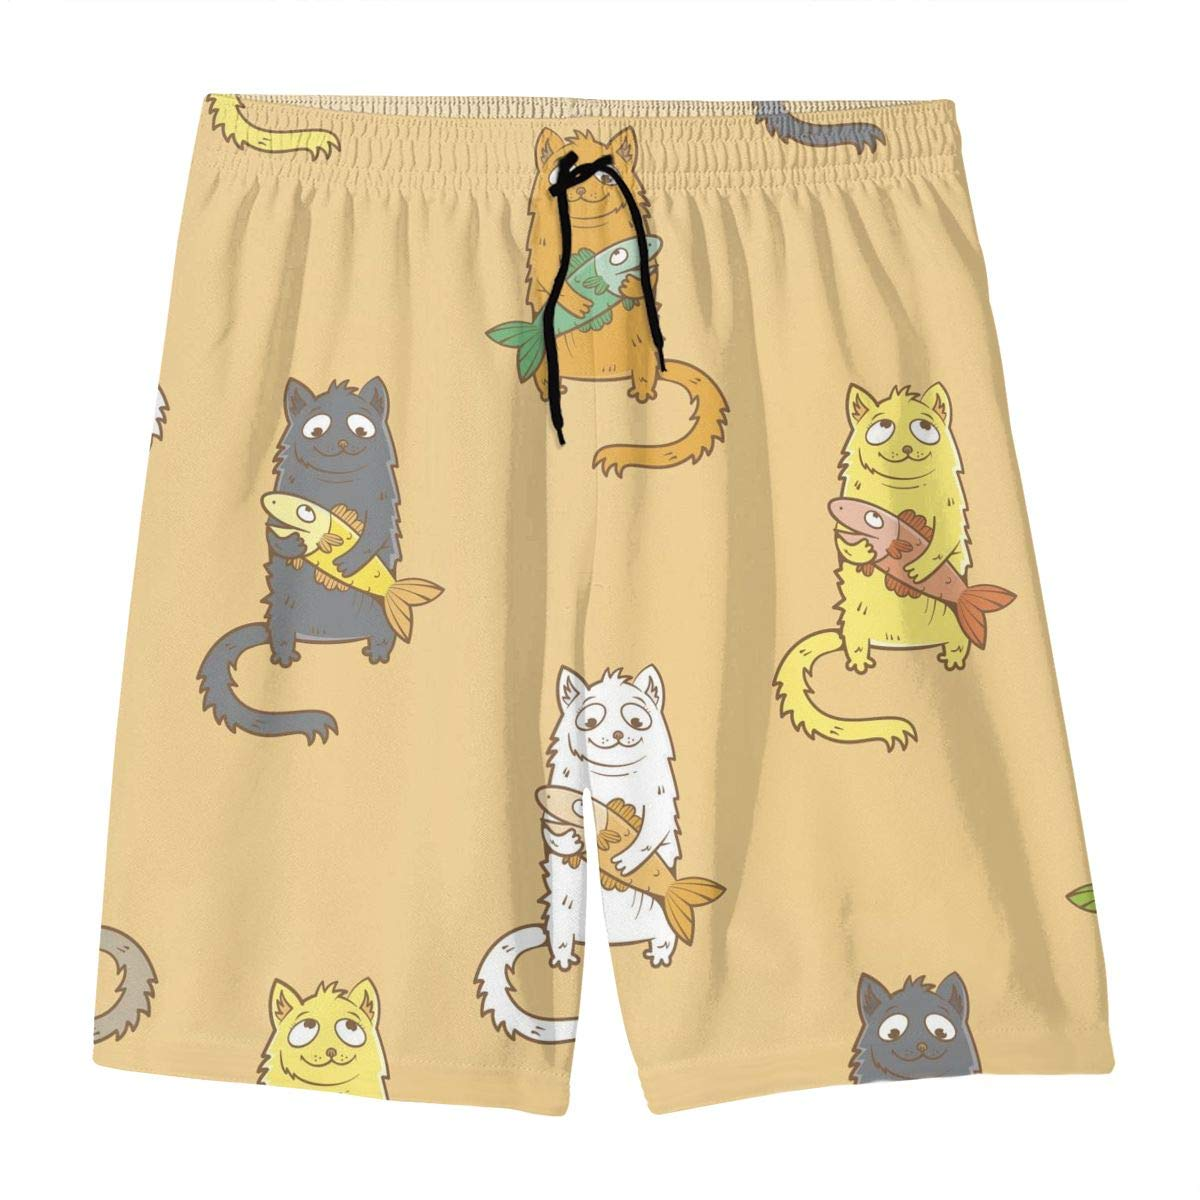 Mens Swim Trunks Cat and Fish Printed Beach Board Shorts with Pockets Cool Novelty Bathing Suits for Teen Boys